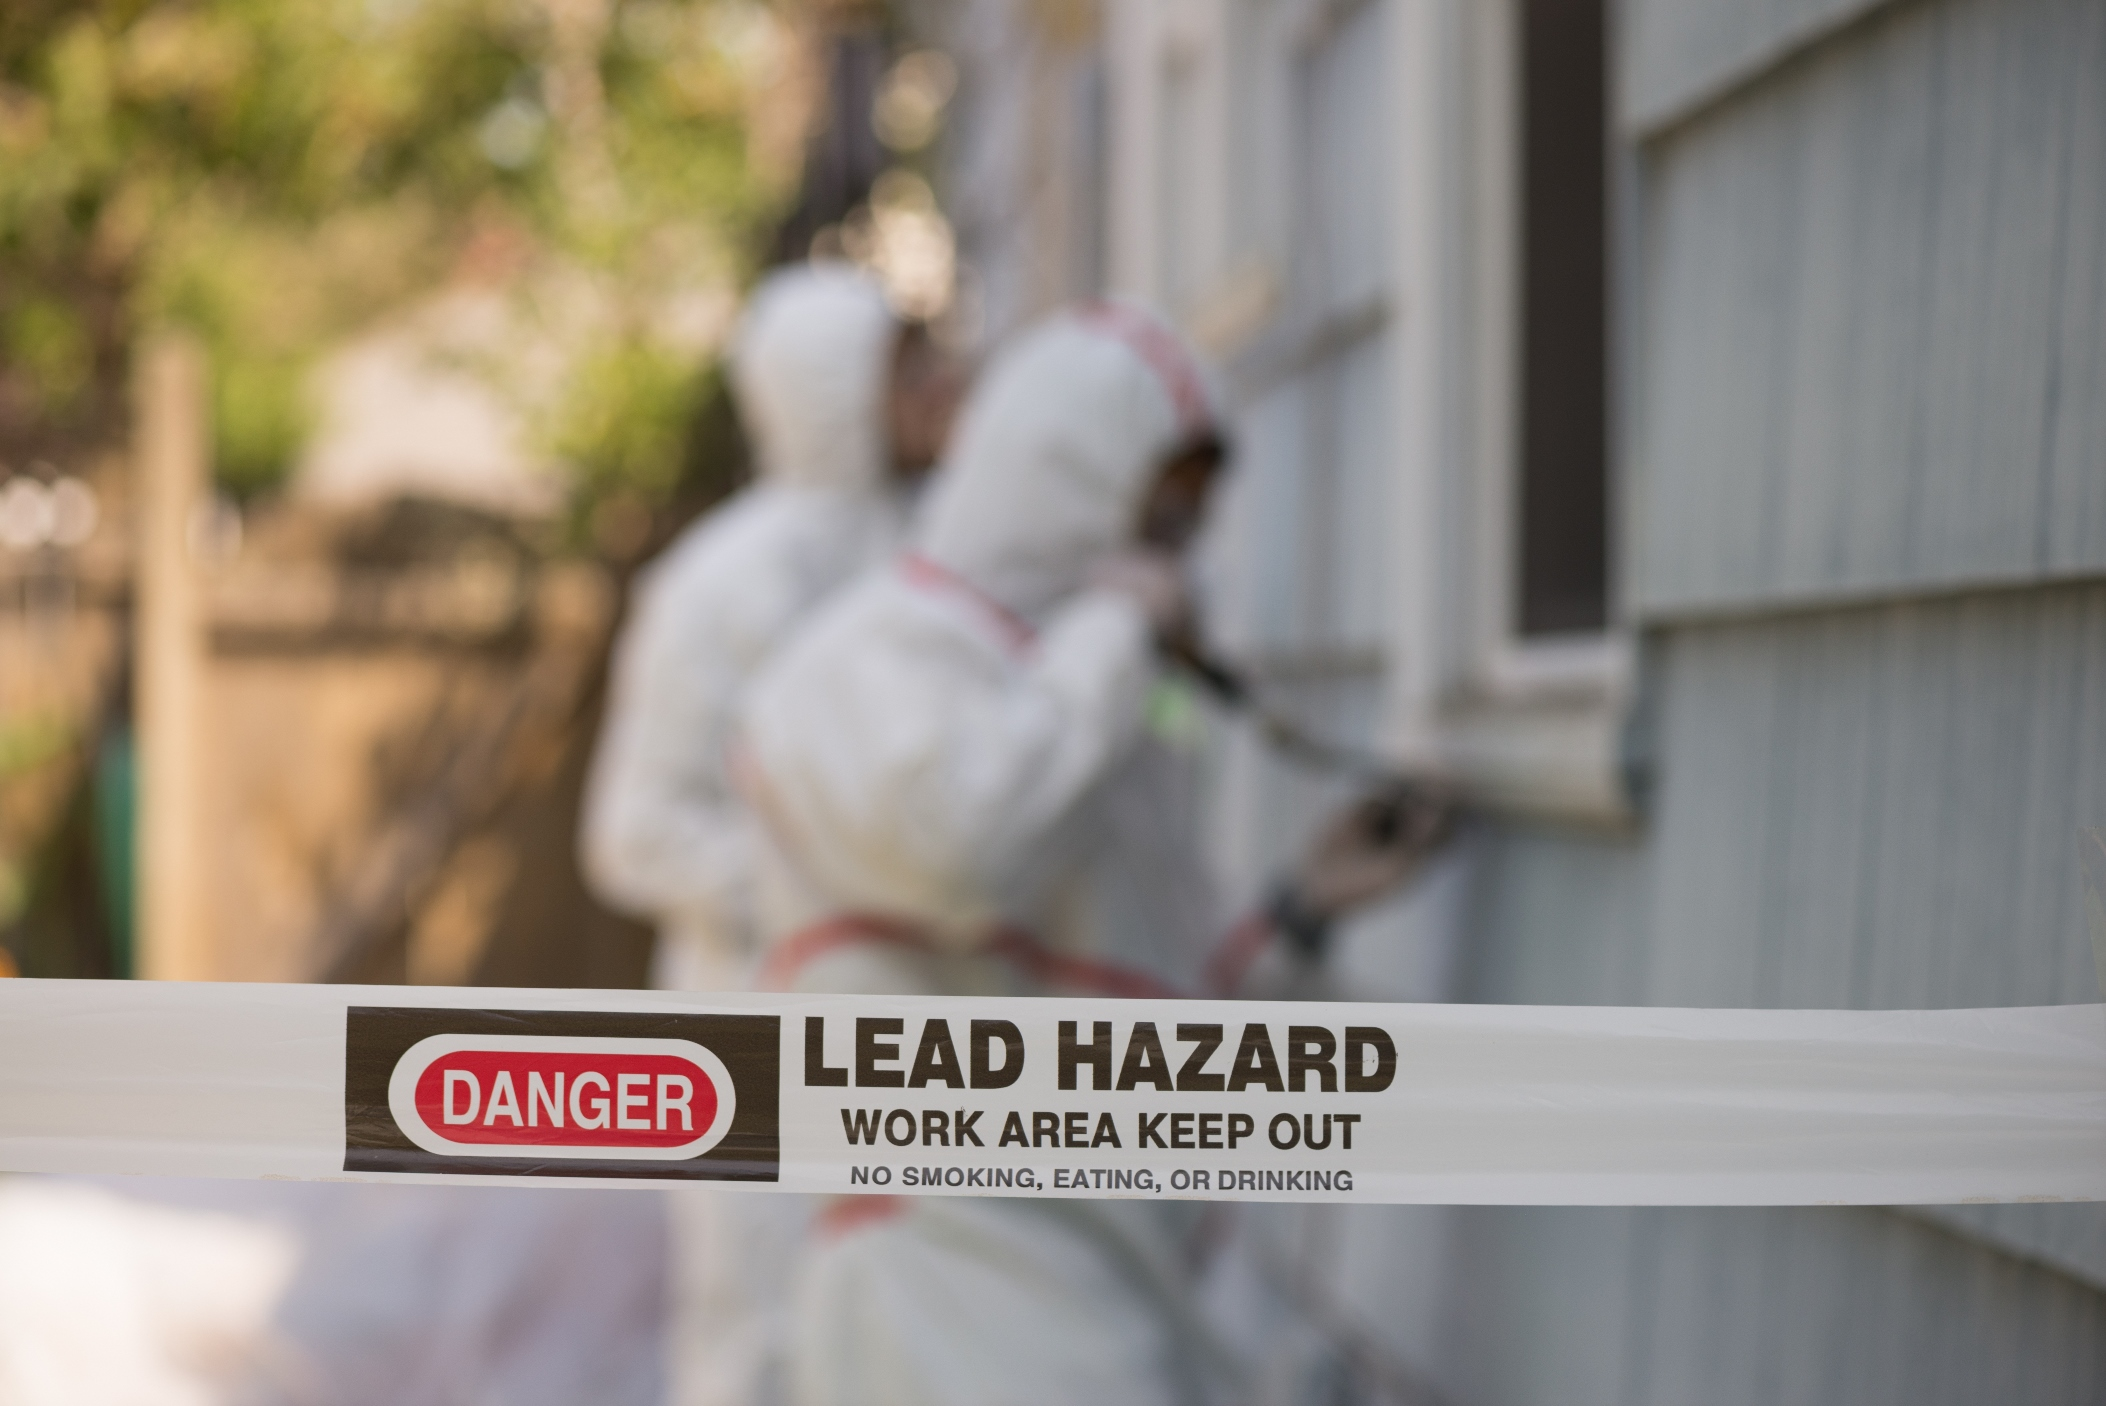 Bay Area cities spent 19 years suing over lead paint, settled for less